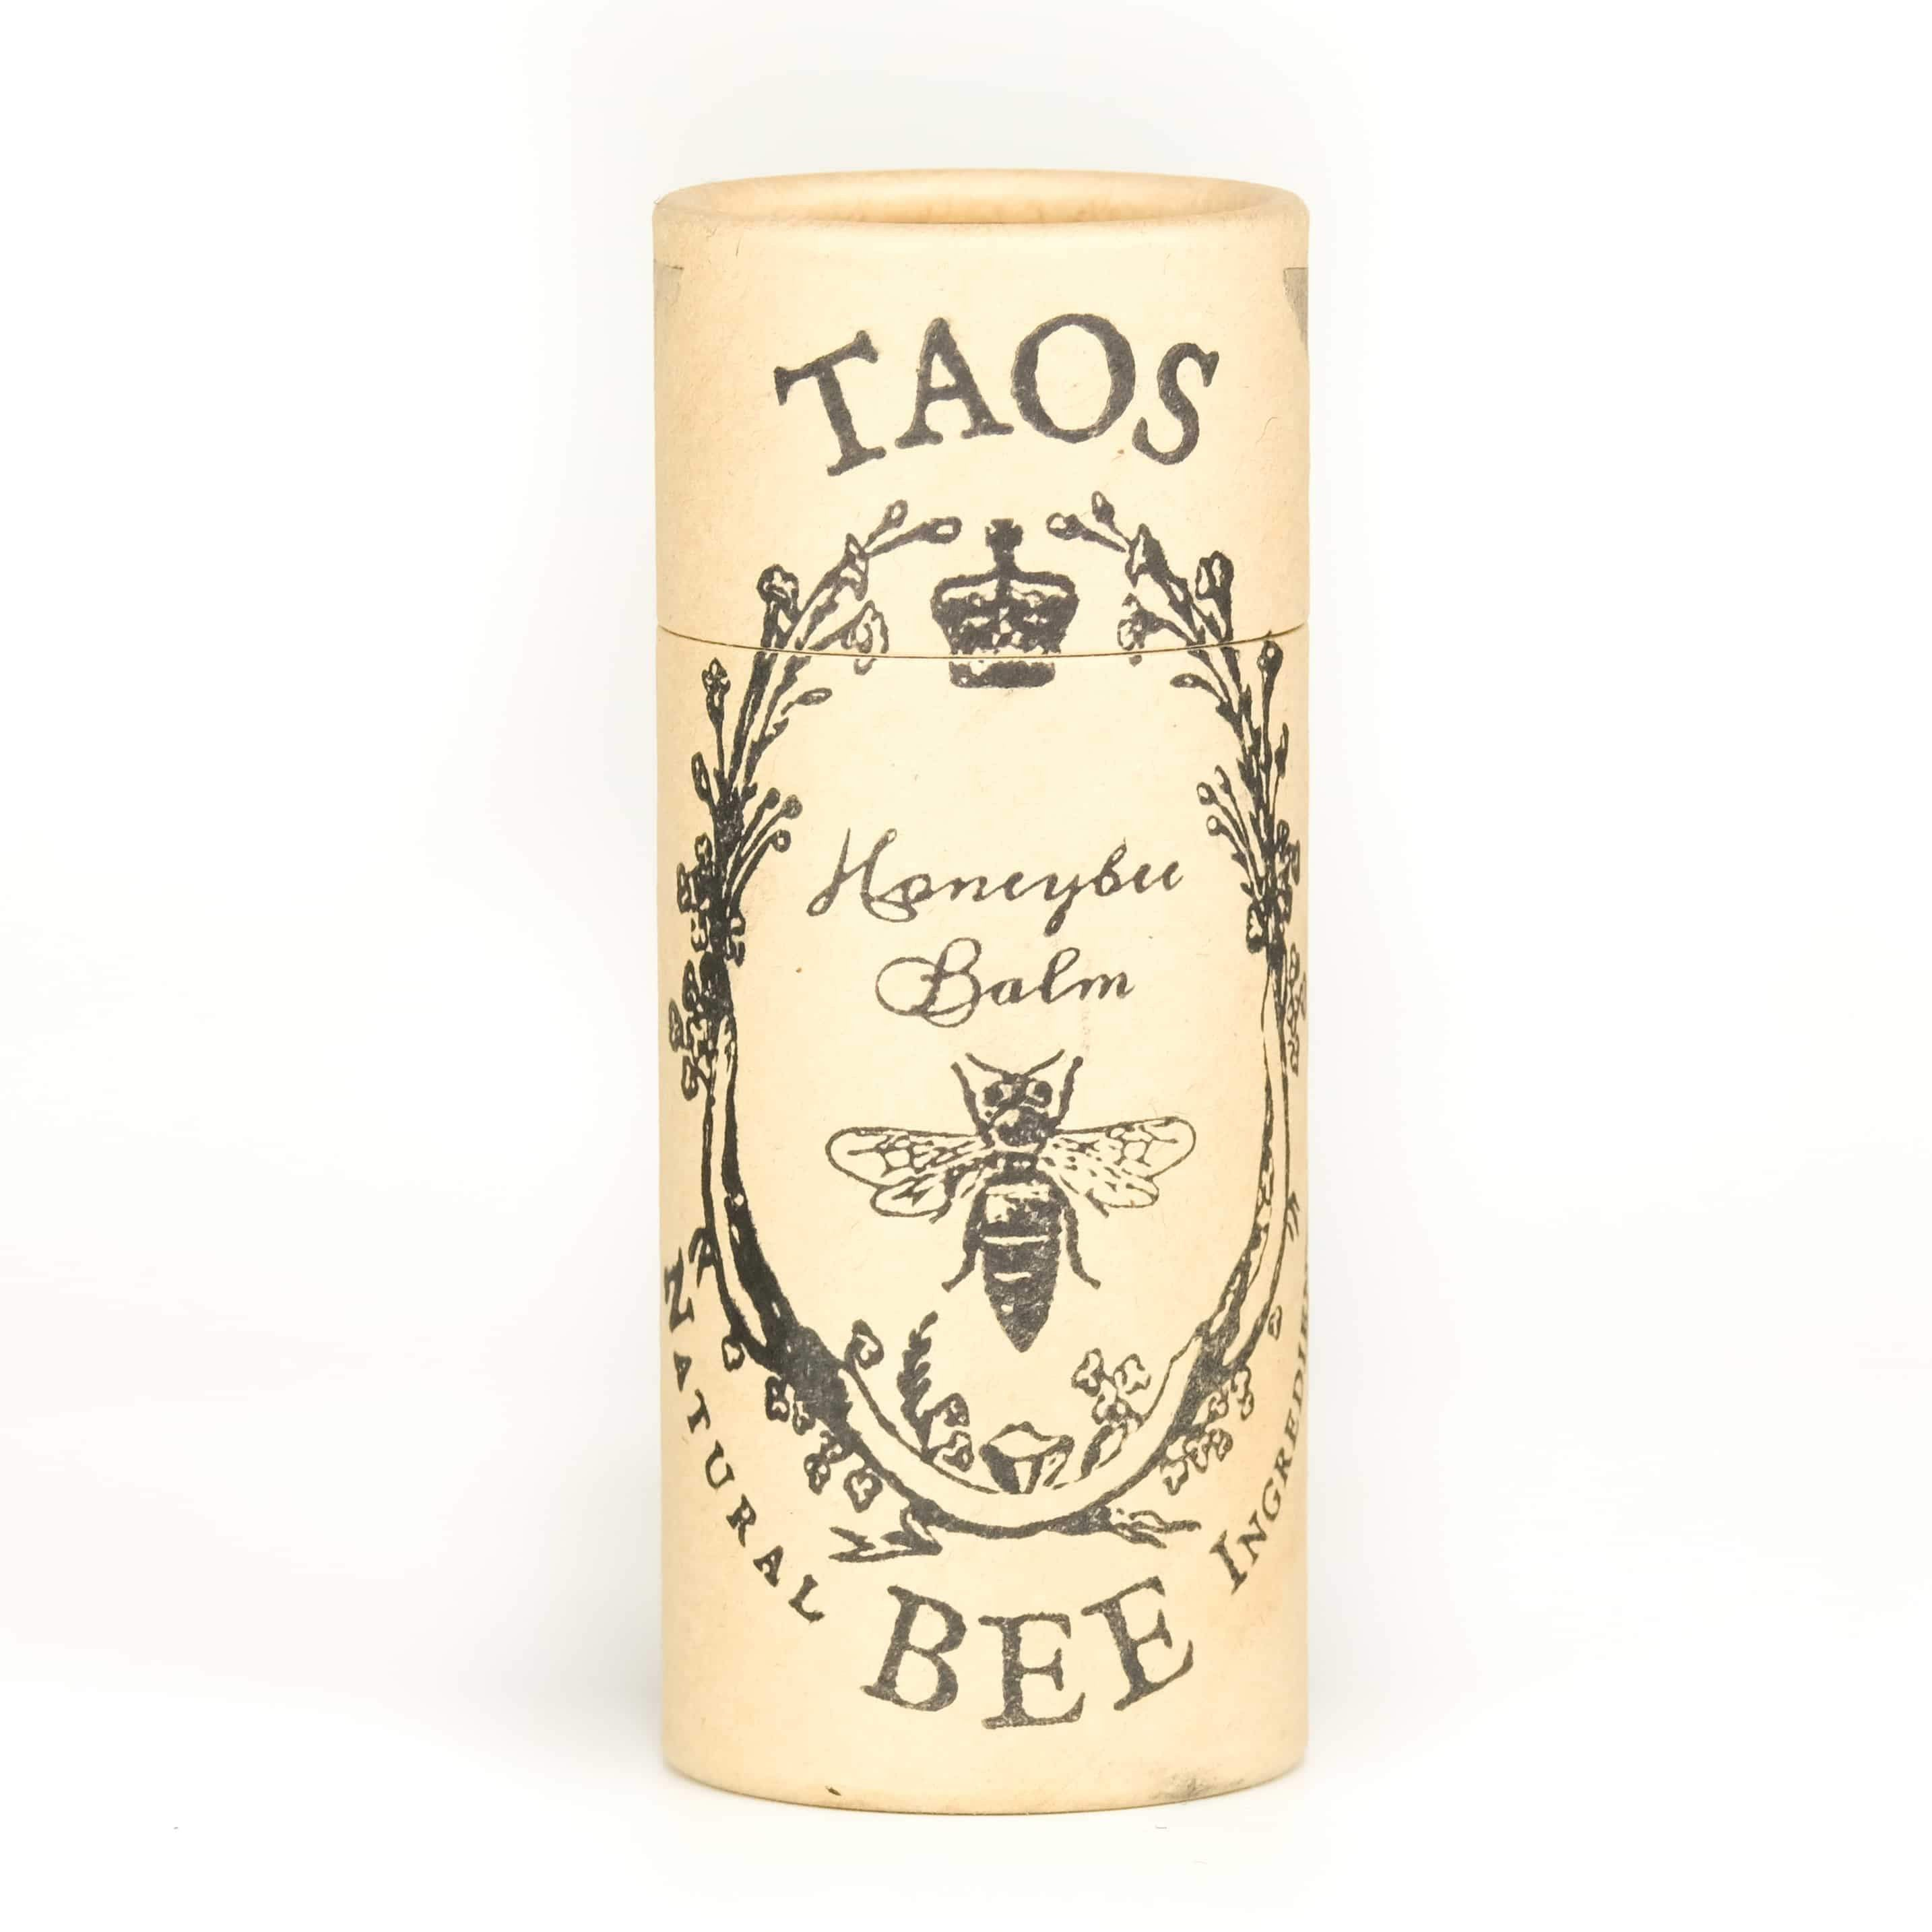 2oz Honey Bee Balm from Taos Bees